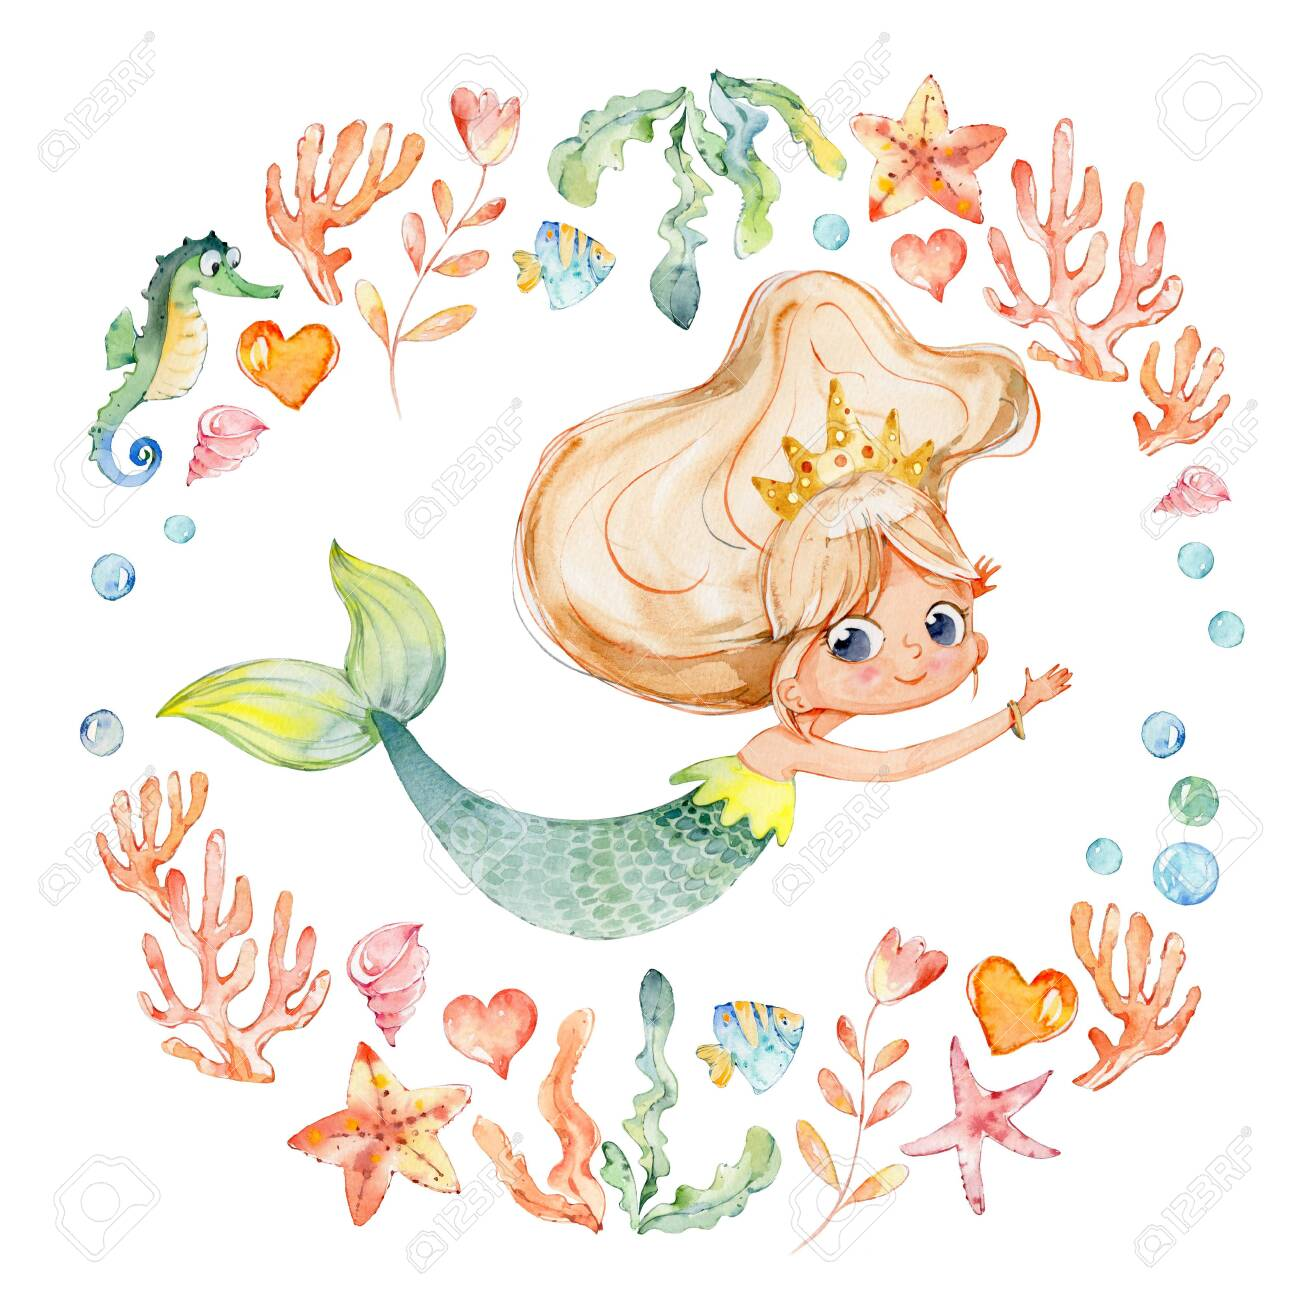 Mermaid Watercolor Surrounded By Frame Of Sea Elements Sea Horse Stock Photo Picture And Royalty Free Image Image 124273527